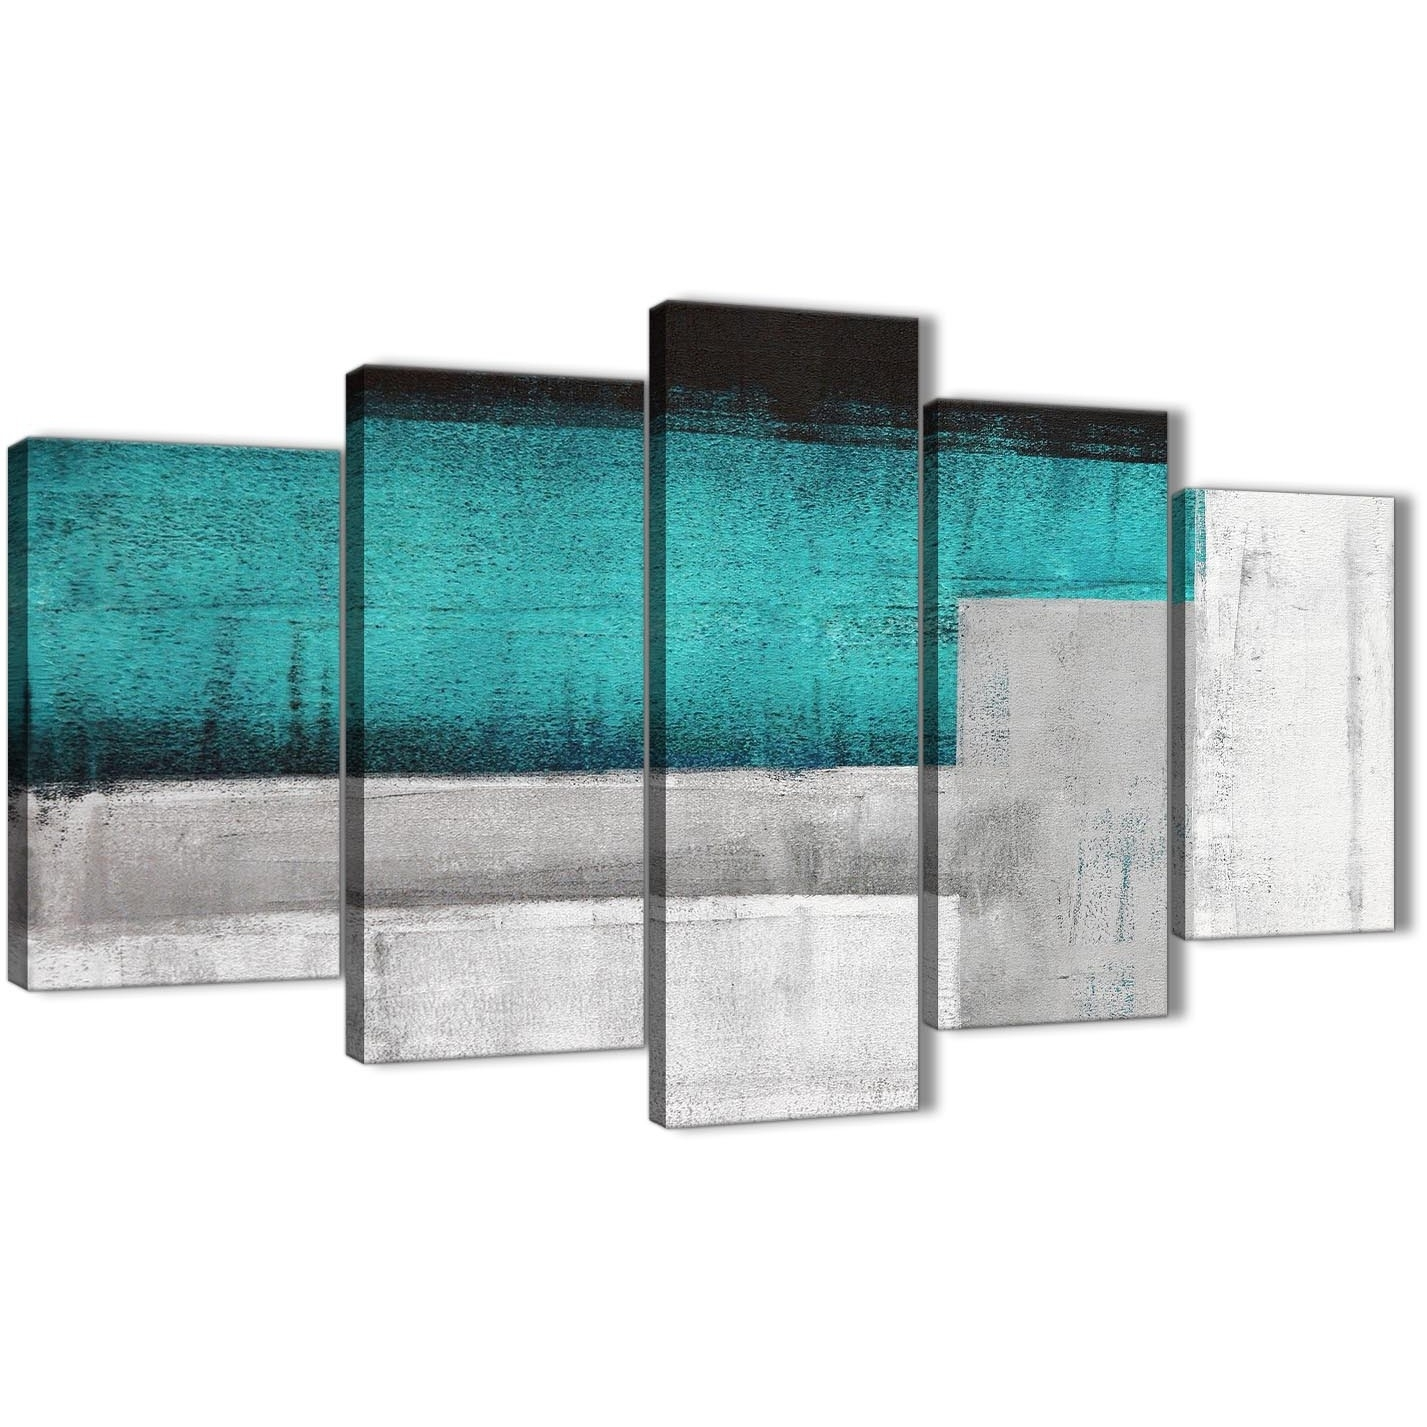 5 Panel Teal Turquoise Grey Painting Abstract Office Canvas Wall Art In Best And Newest Oversized Teal Canvas Wall Art (View 1 of 20)